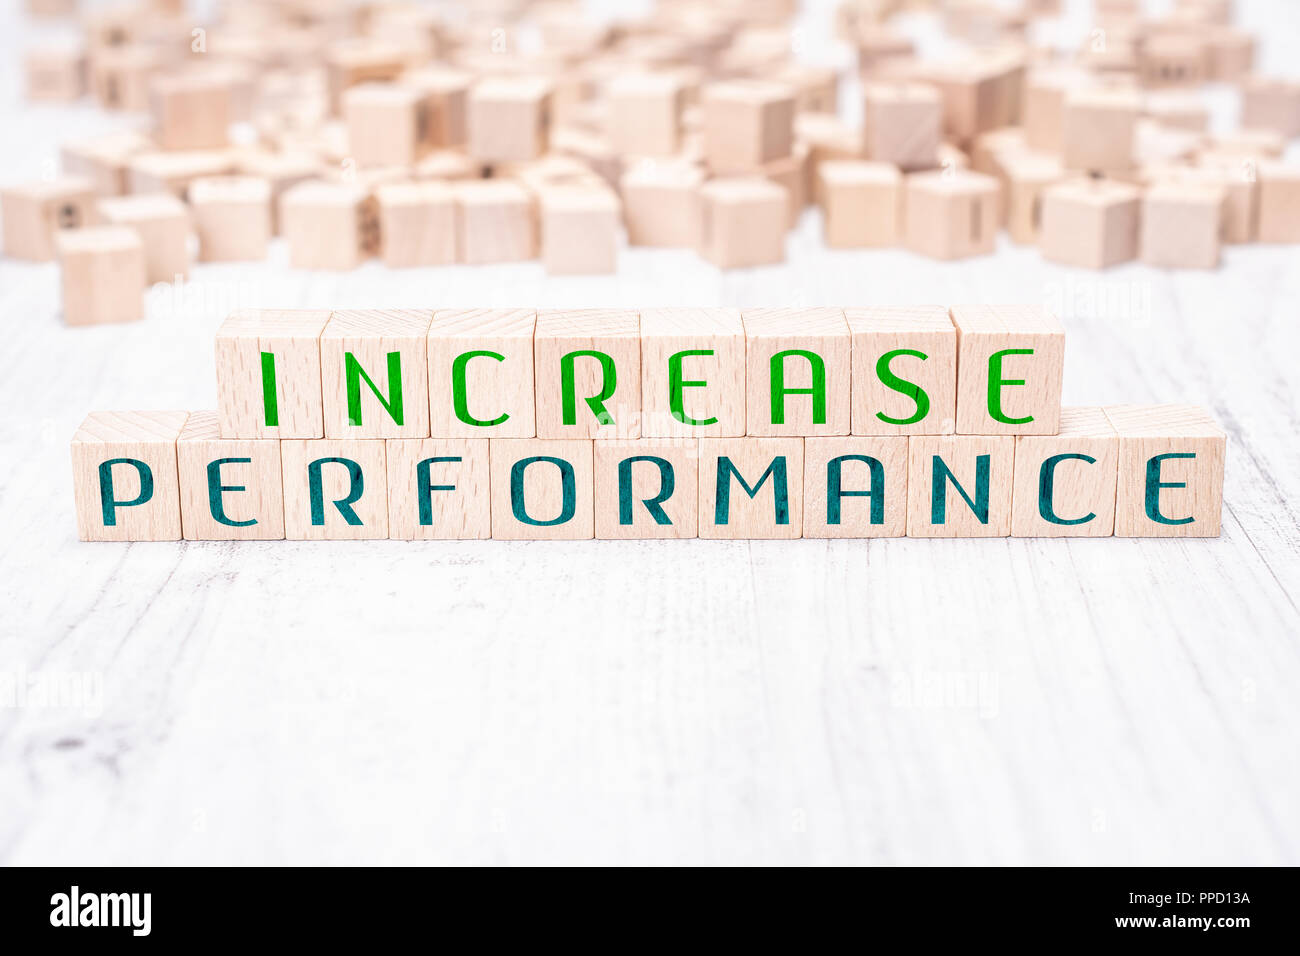 The Words Increase Performance Formed By Wooden Blocks On A White Table - Stock Image